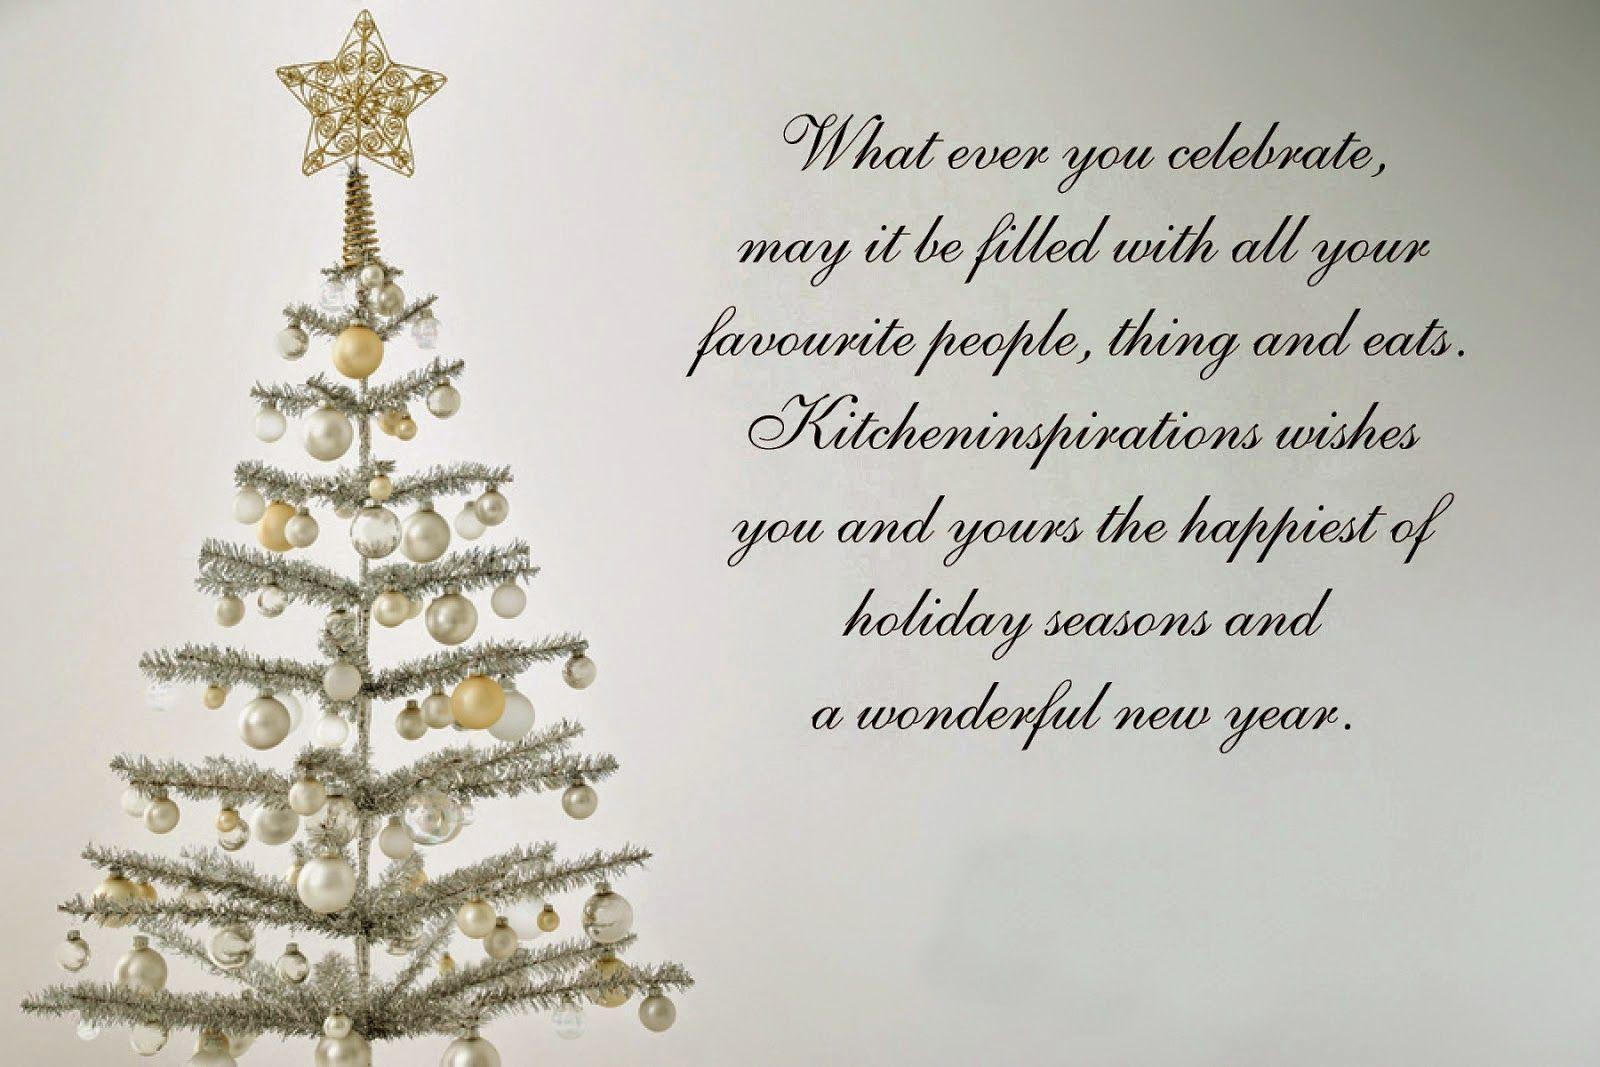 Whatever You Celebrate Christmas Card Verses Christmas Wishes Quotes Xmas Quotes